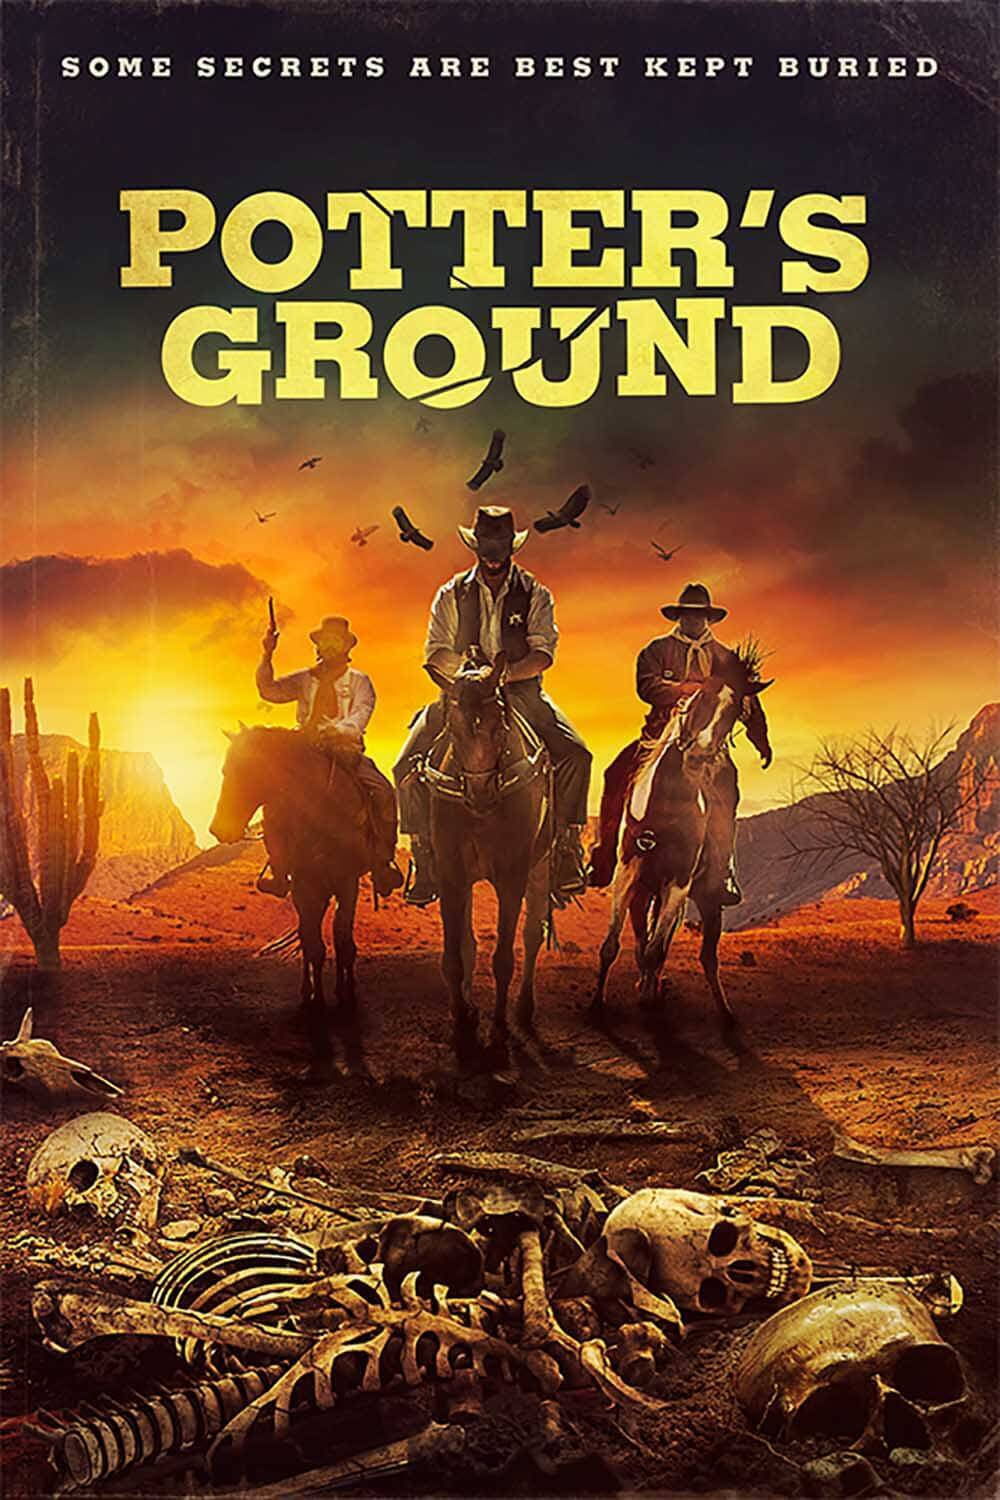 Potter's Ground 2021 HD Download